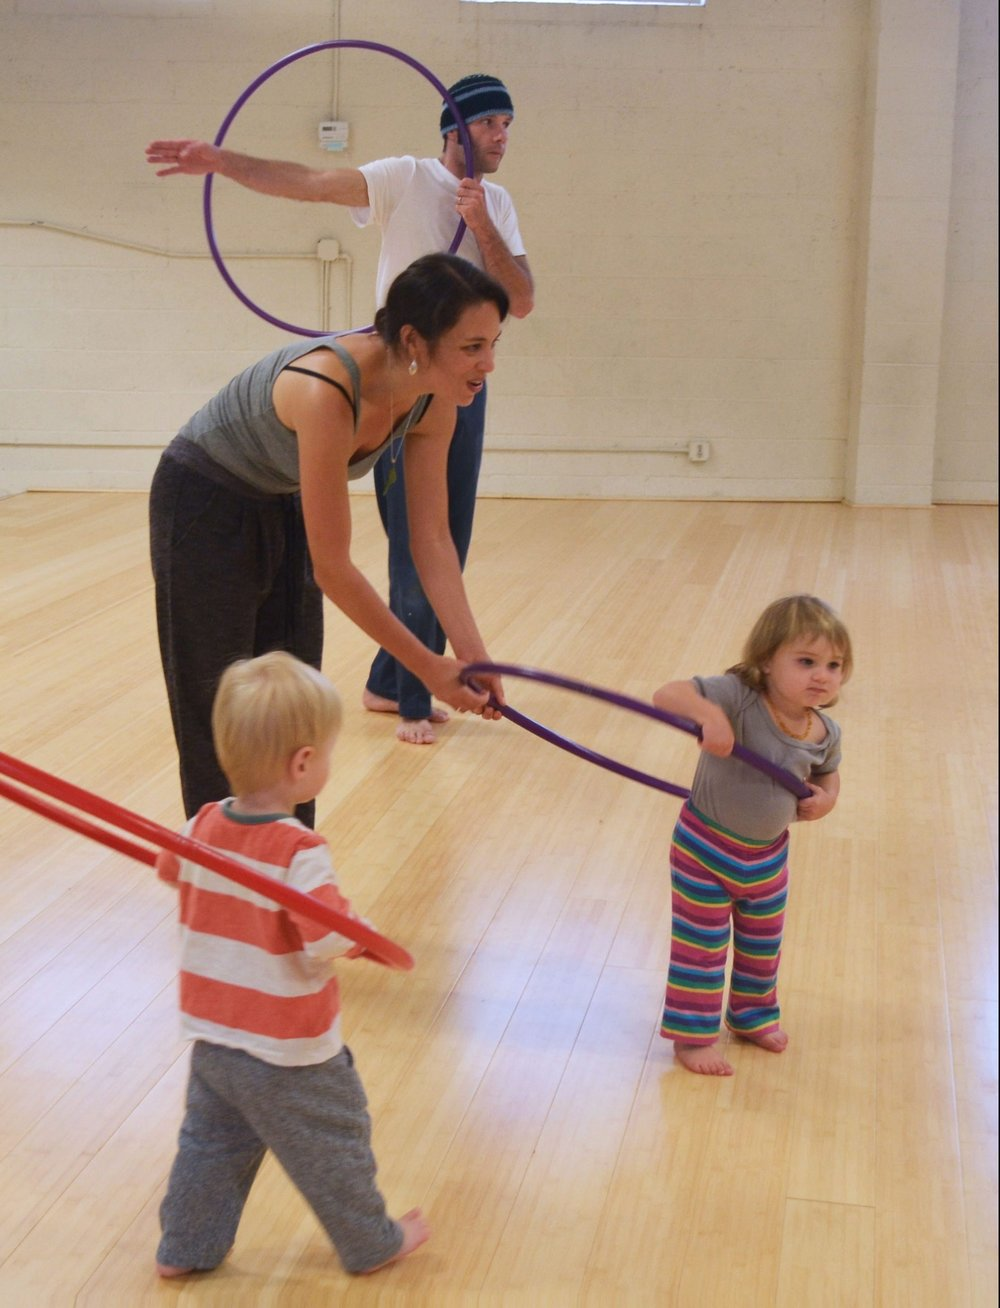 Mom-dad-hula-hoop-e1486021239962.jpg